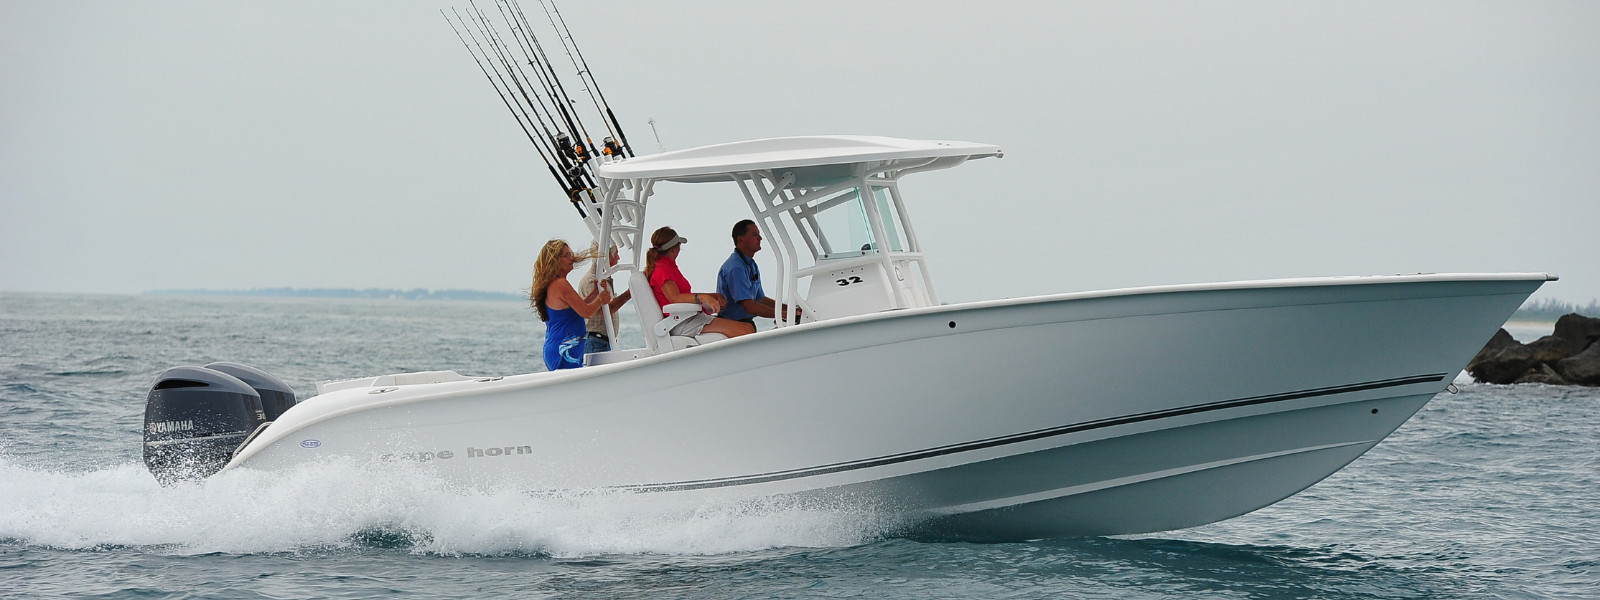 cape-horn-white-32-on-water-fishing-gear-and-3-people